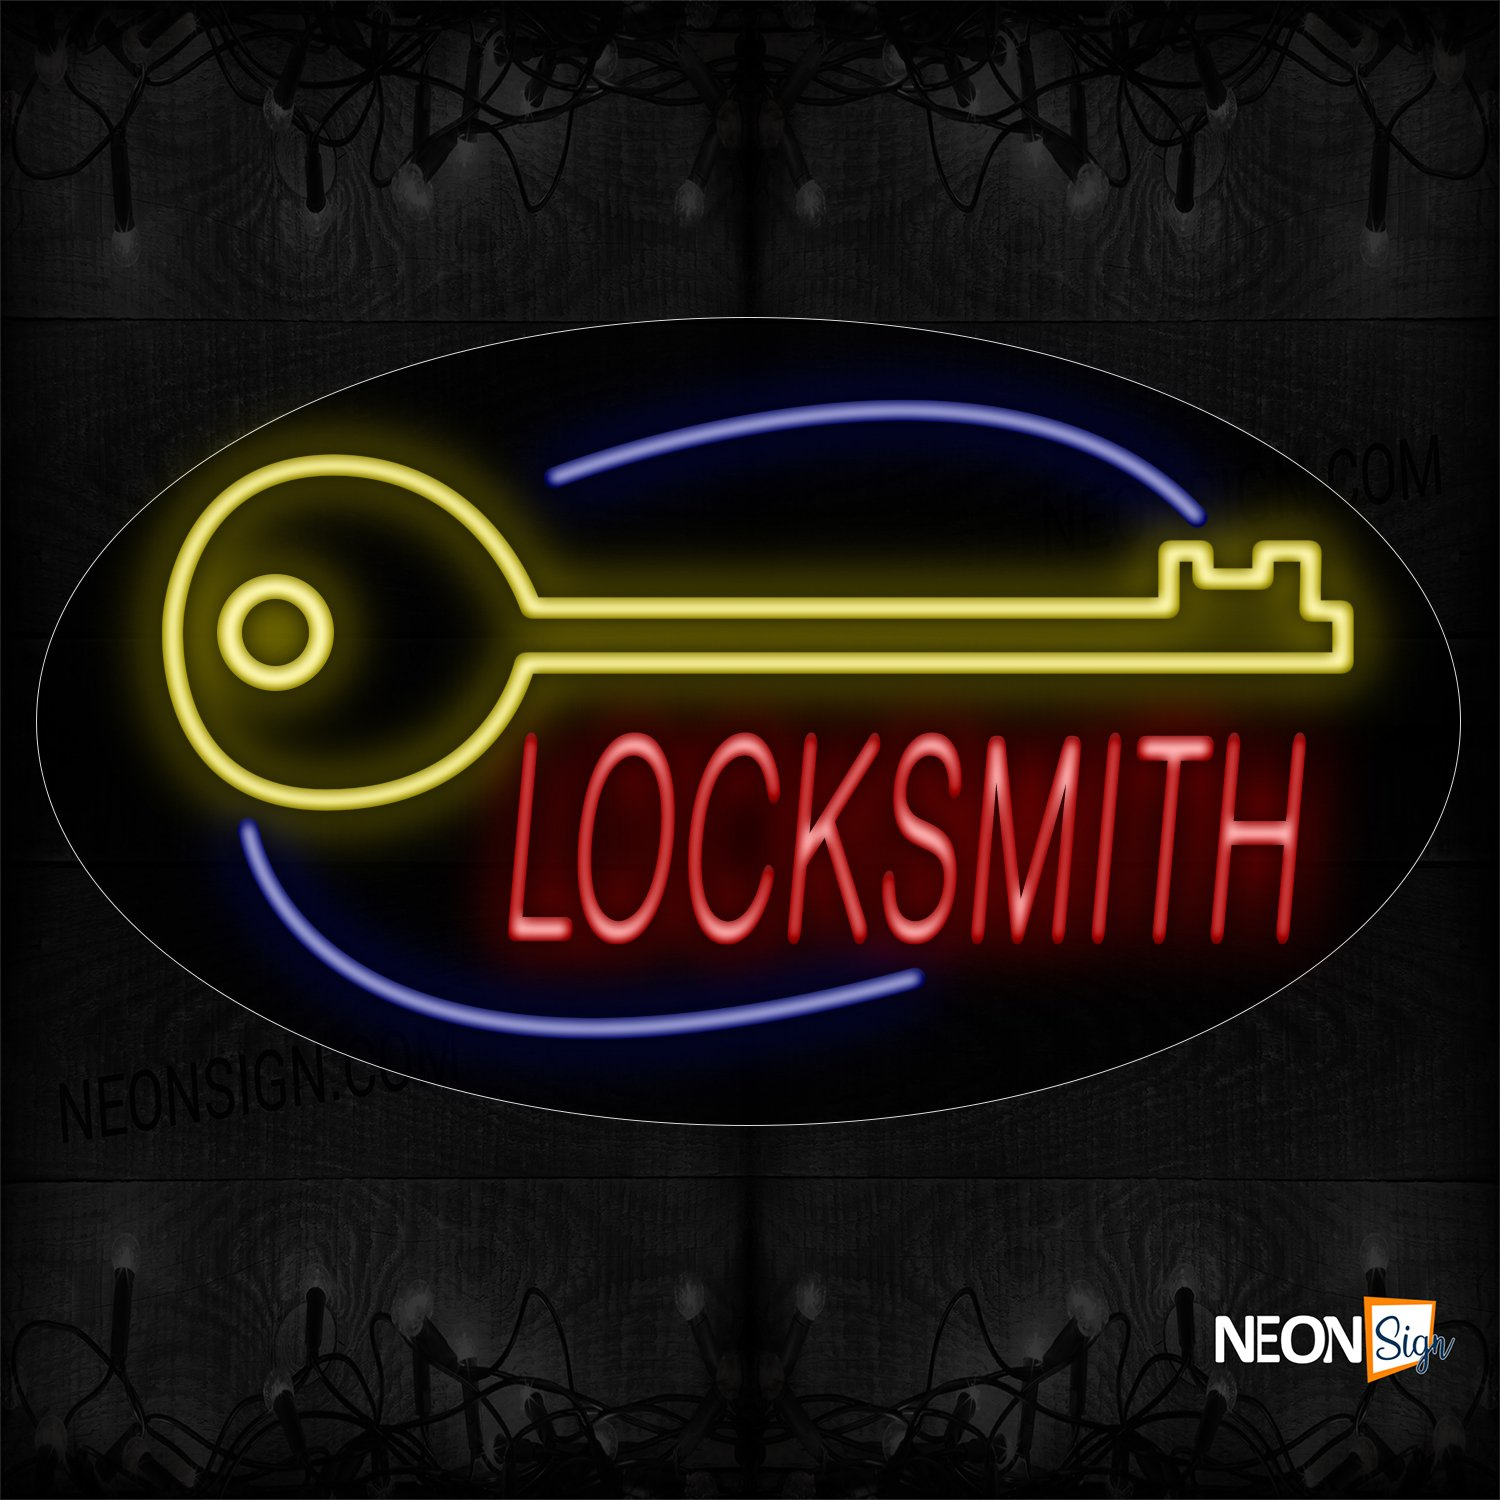 Image of 14240 Locksmith With Key And Curve Line Neon Sign_17x30 Contoured Black Backing